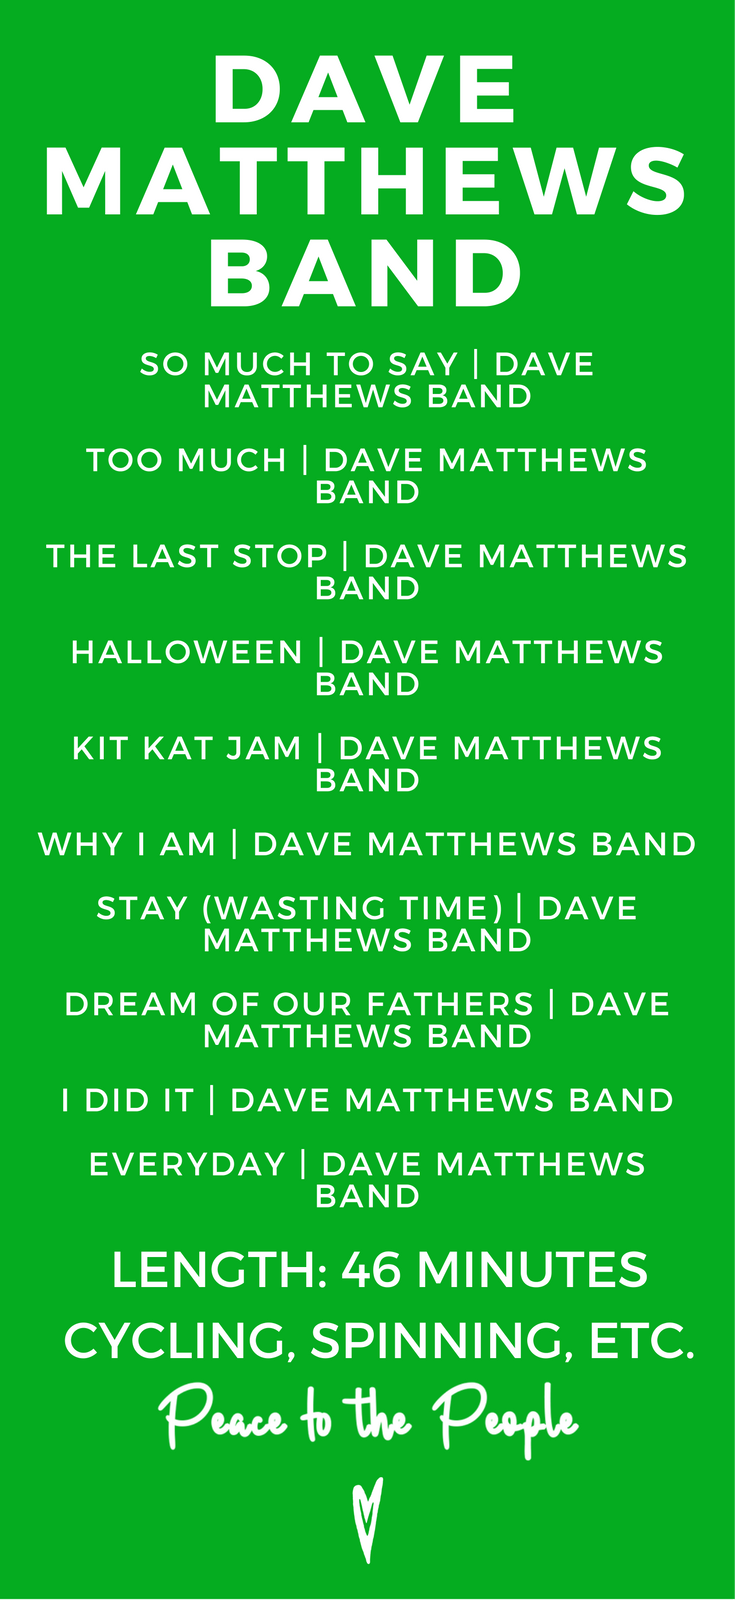 Dave Matthews Band Rock Strength Fitness Cycling Spinning Running Playlist Music